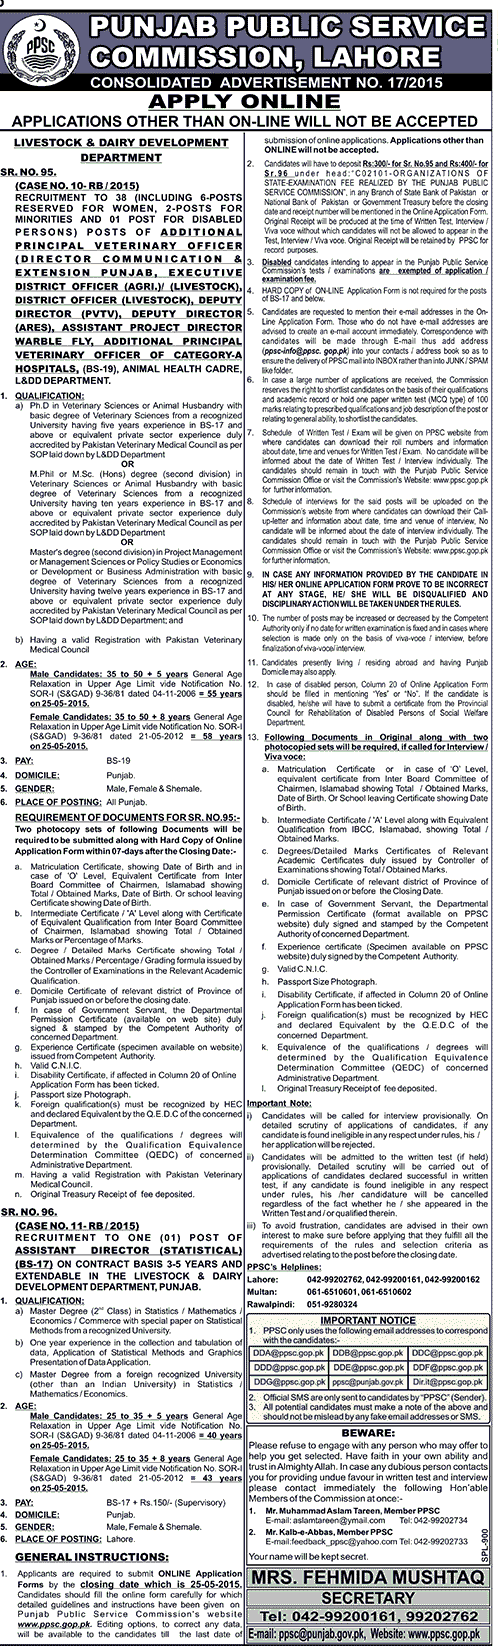 Live Stock and Dairy Development Department, Punjab Jobs